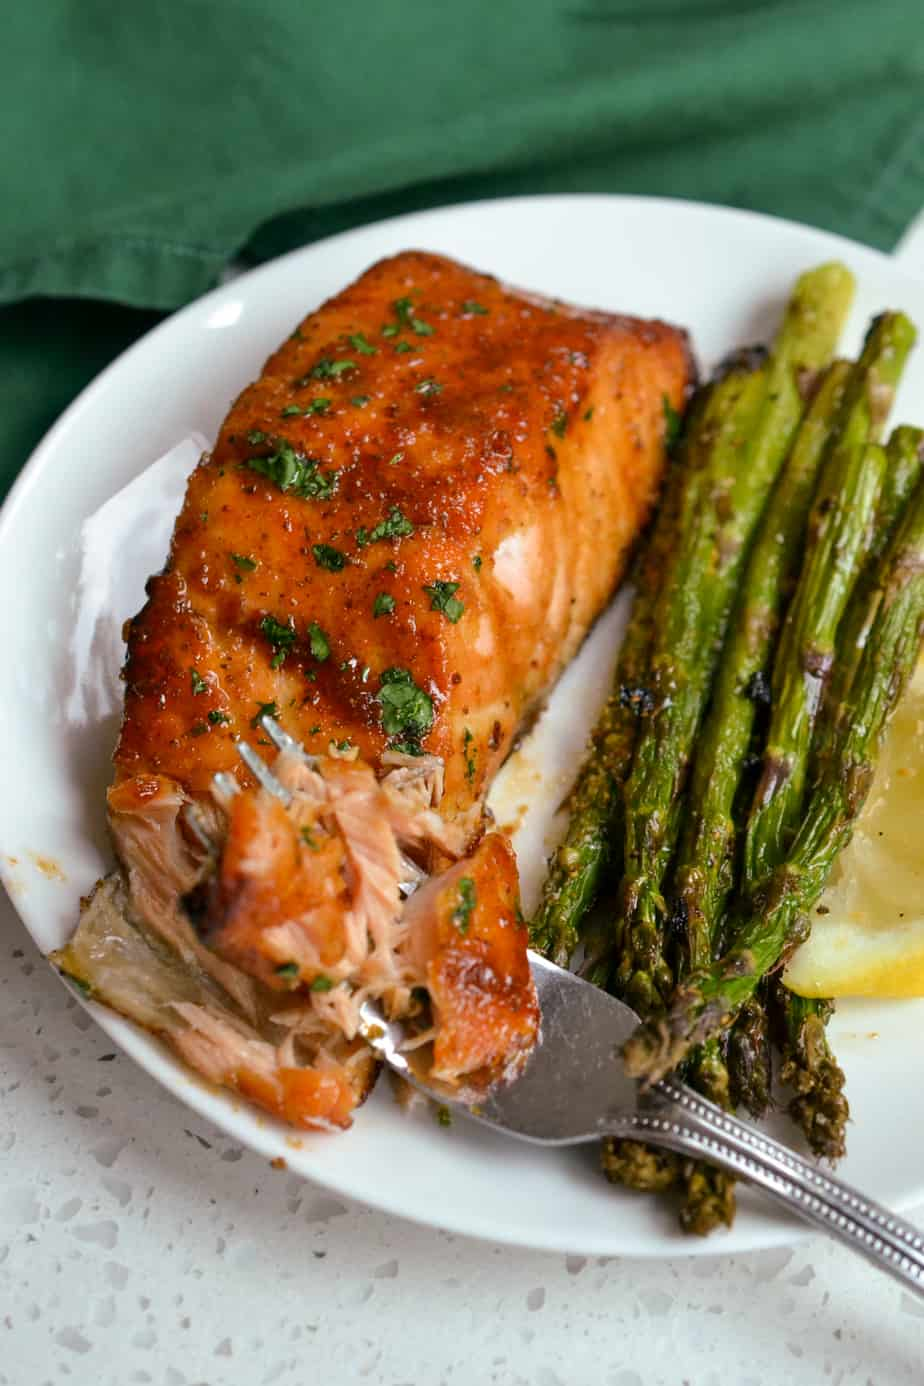 A cooked salmon filet flaked with a fork.